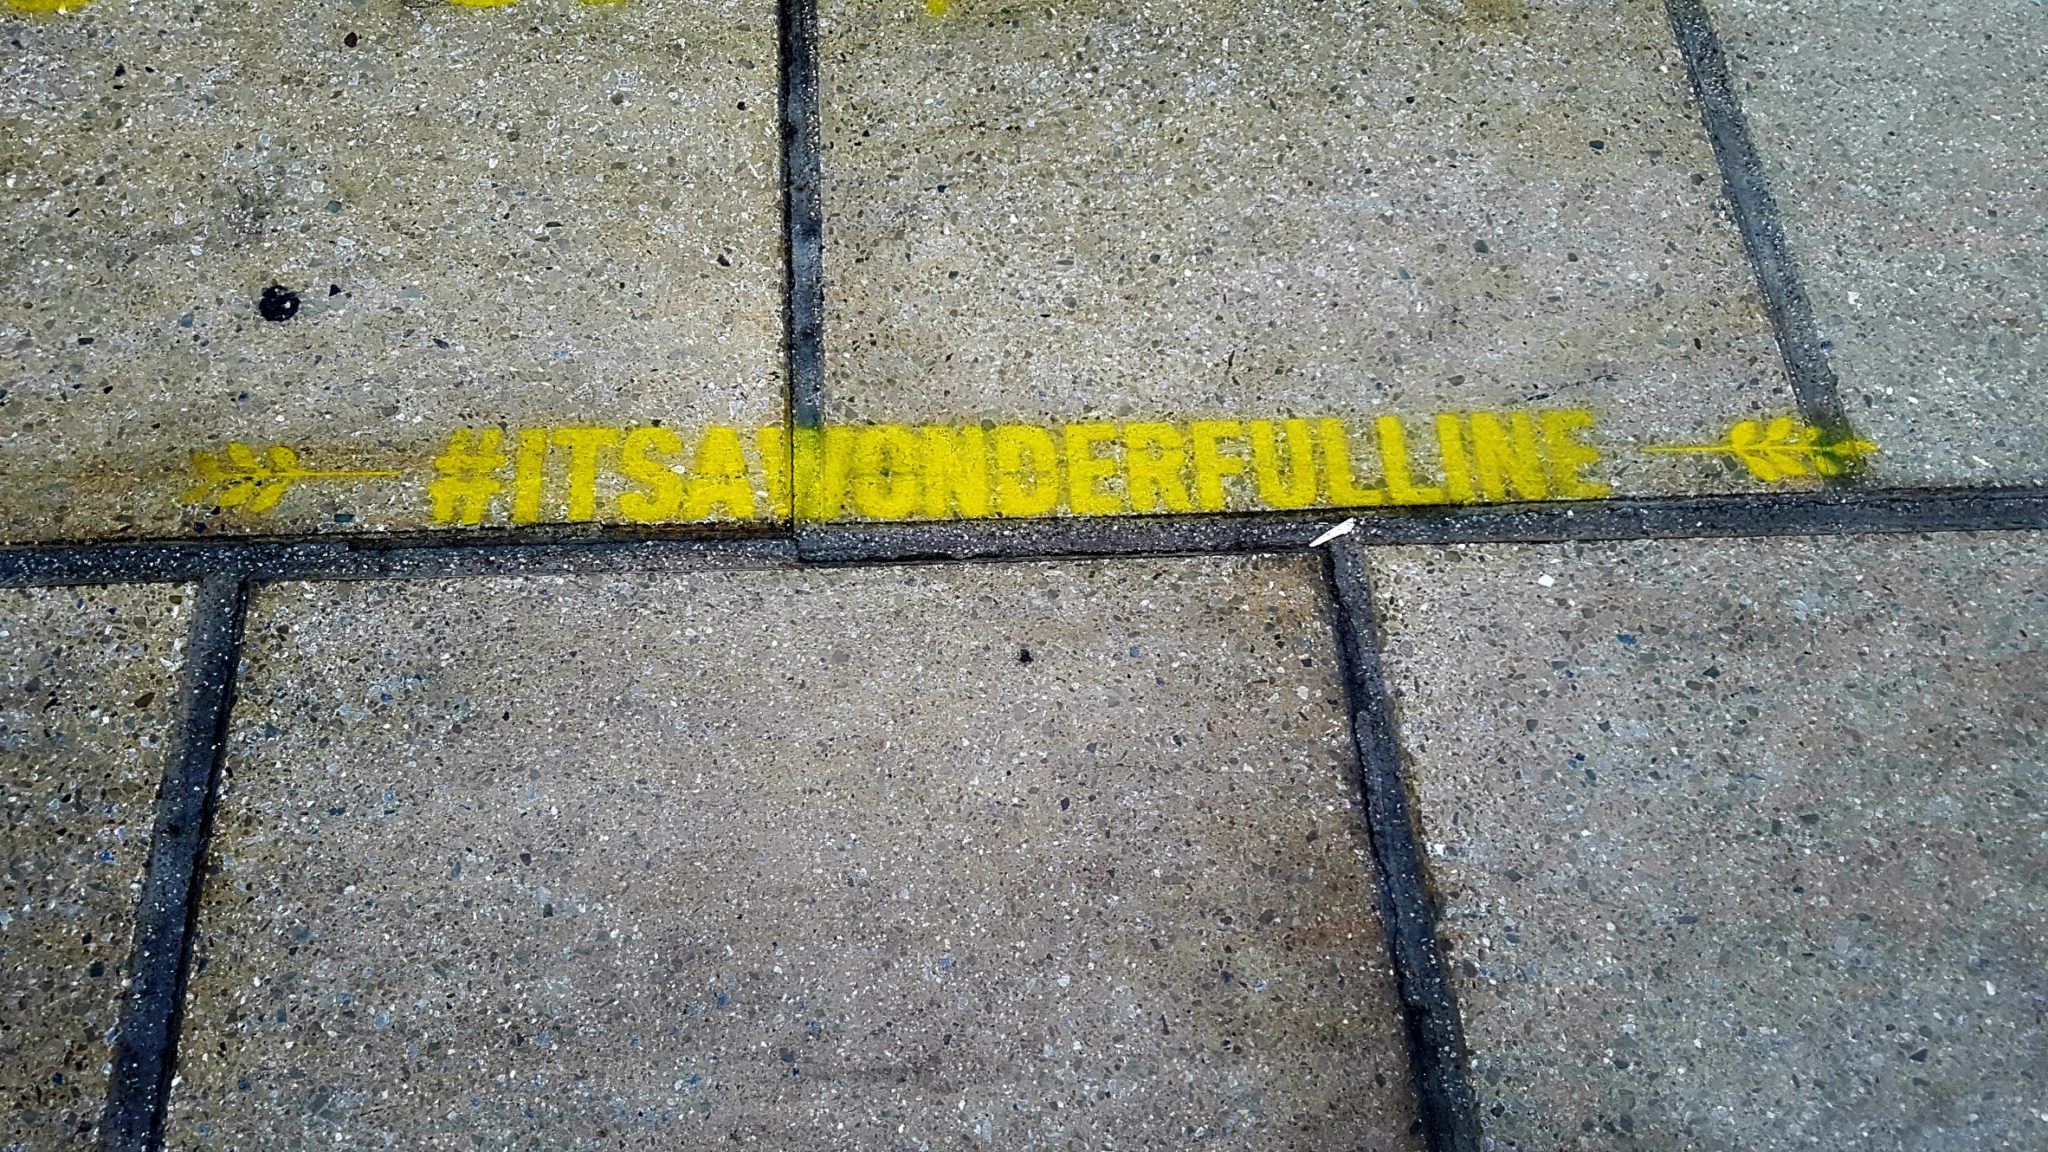 #itsawonderfulline in yellow paint on a train platform at liverpool lime street